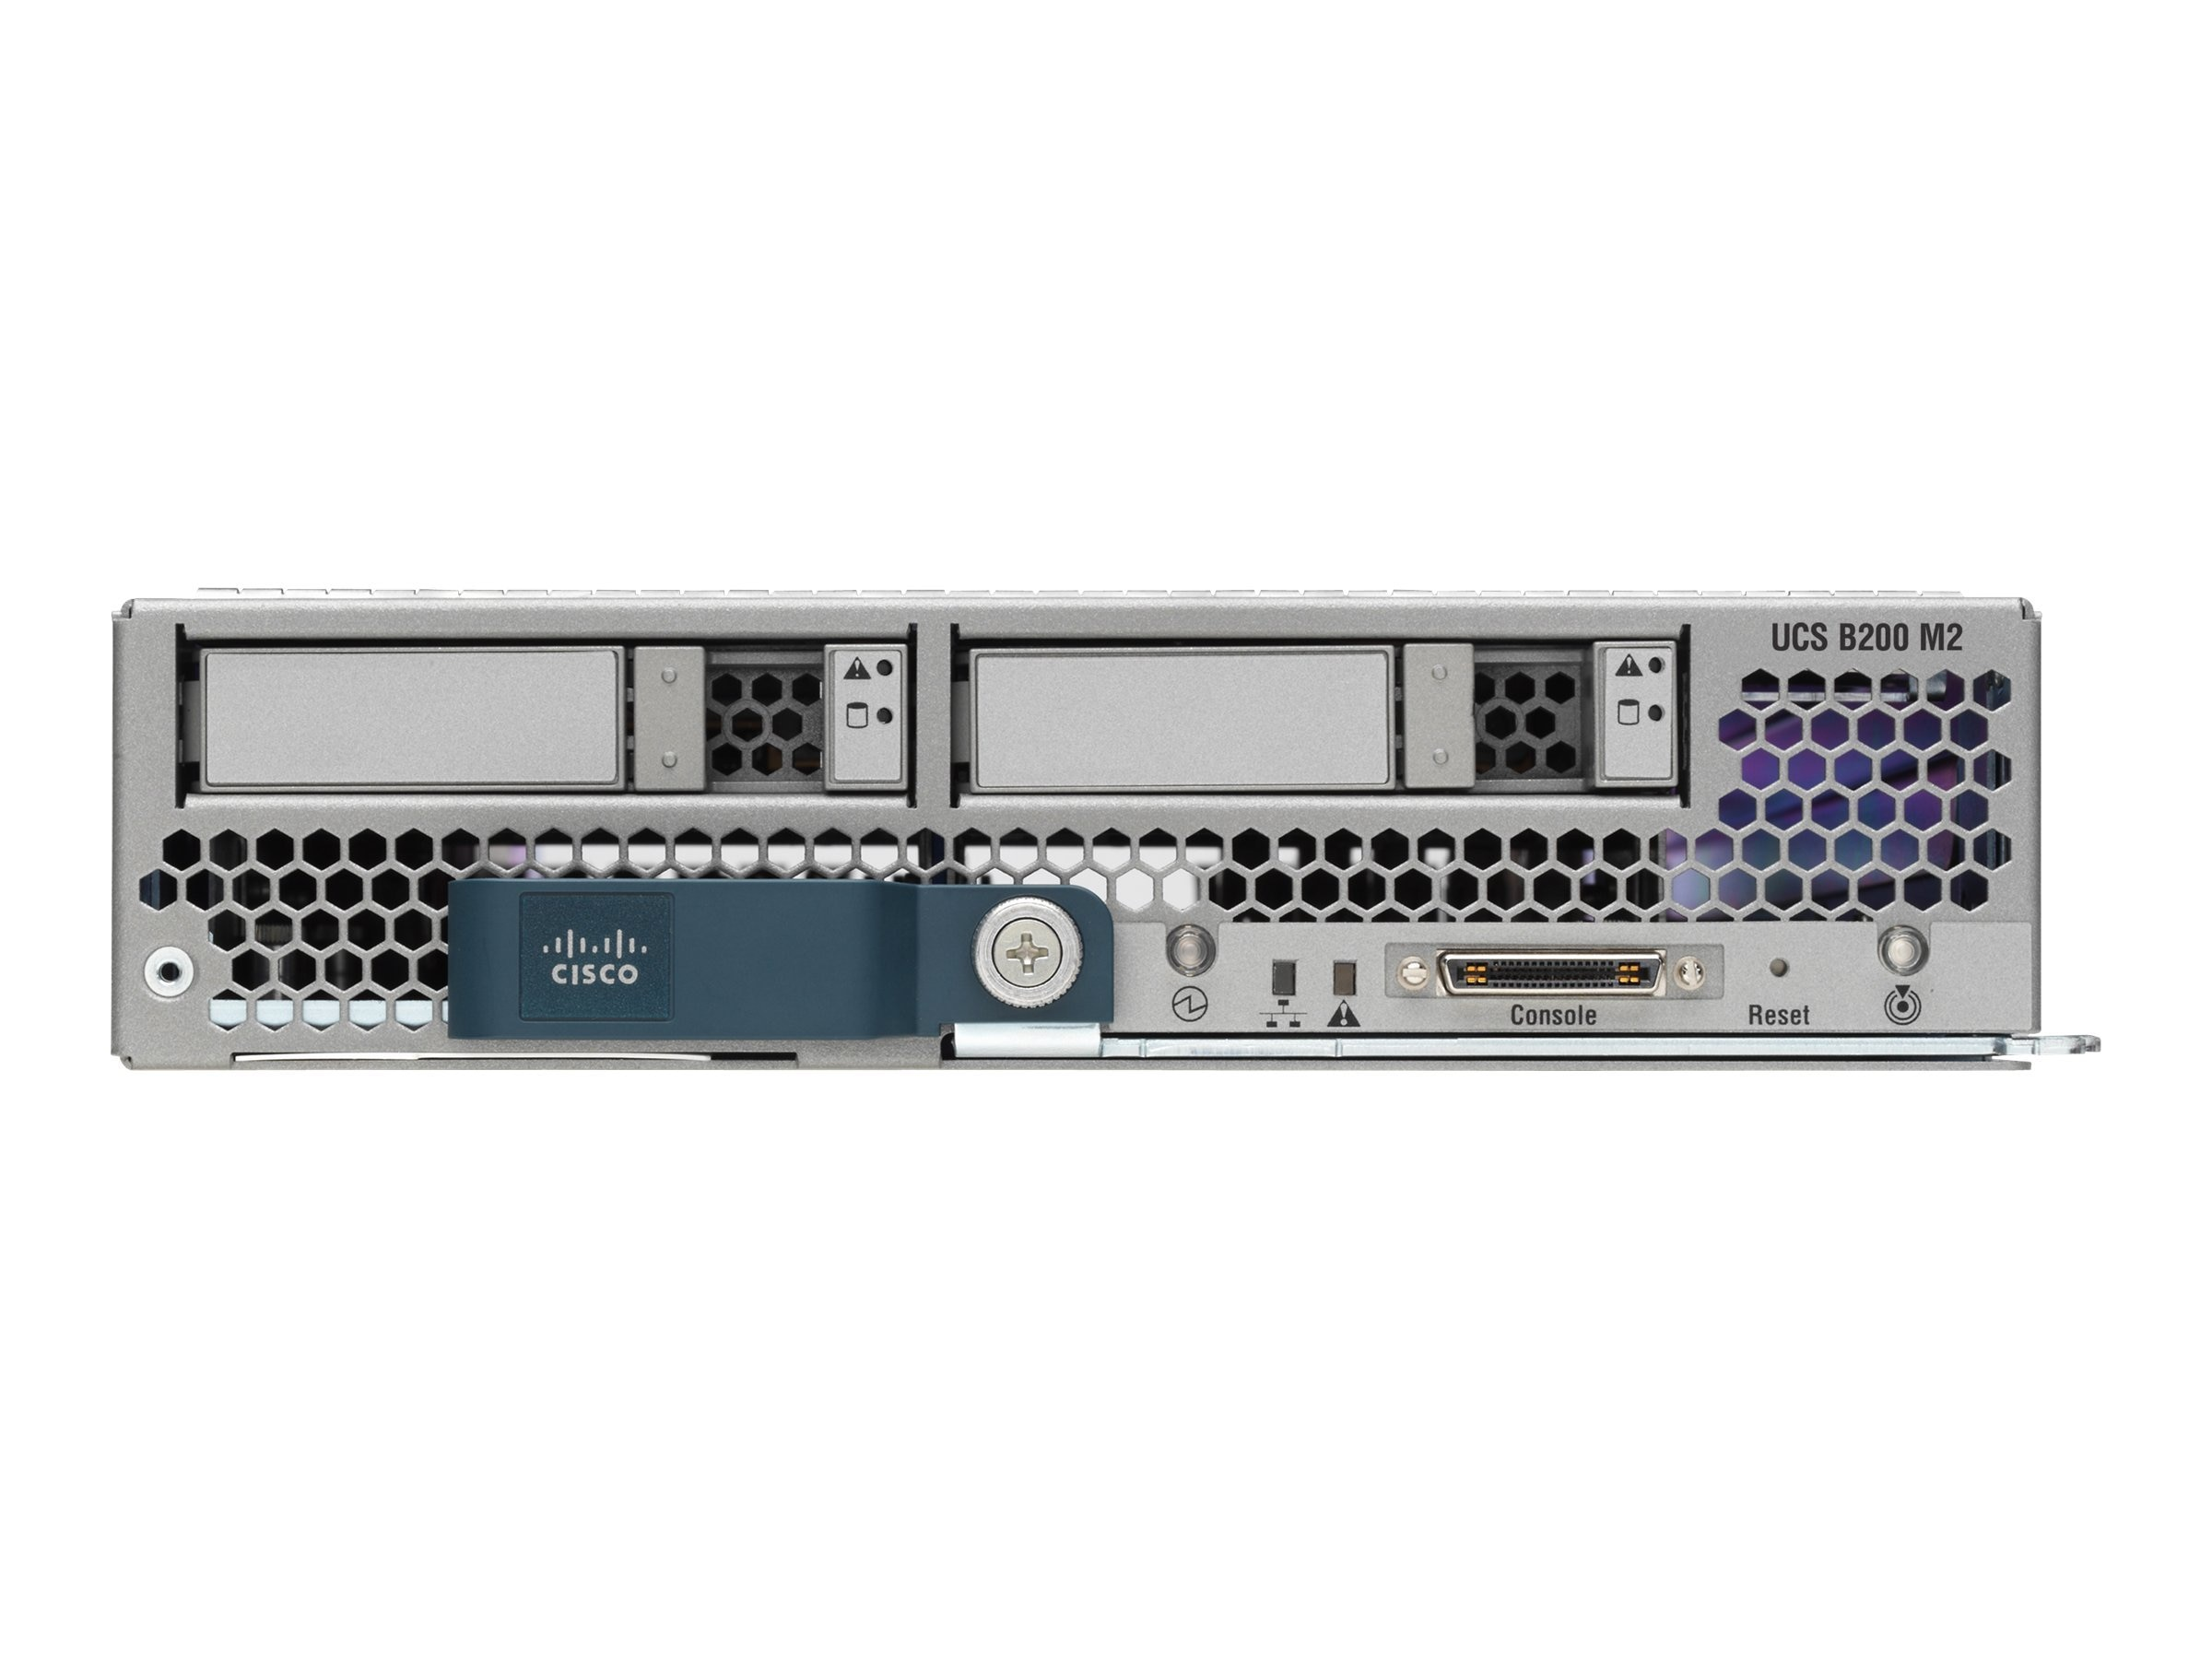 Cisco UCS B200 M2 Blade Server, No CPU Memory 2.5 Hot Swap, N20-B6625-1-UPG, 11787591, Servers - Blade